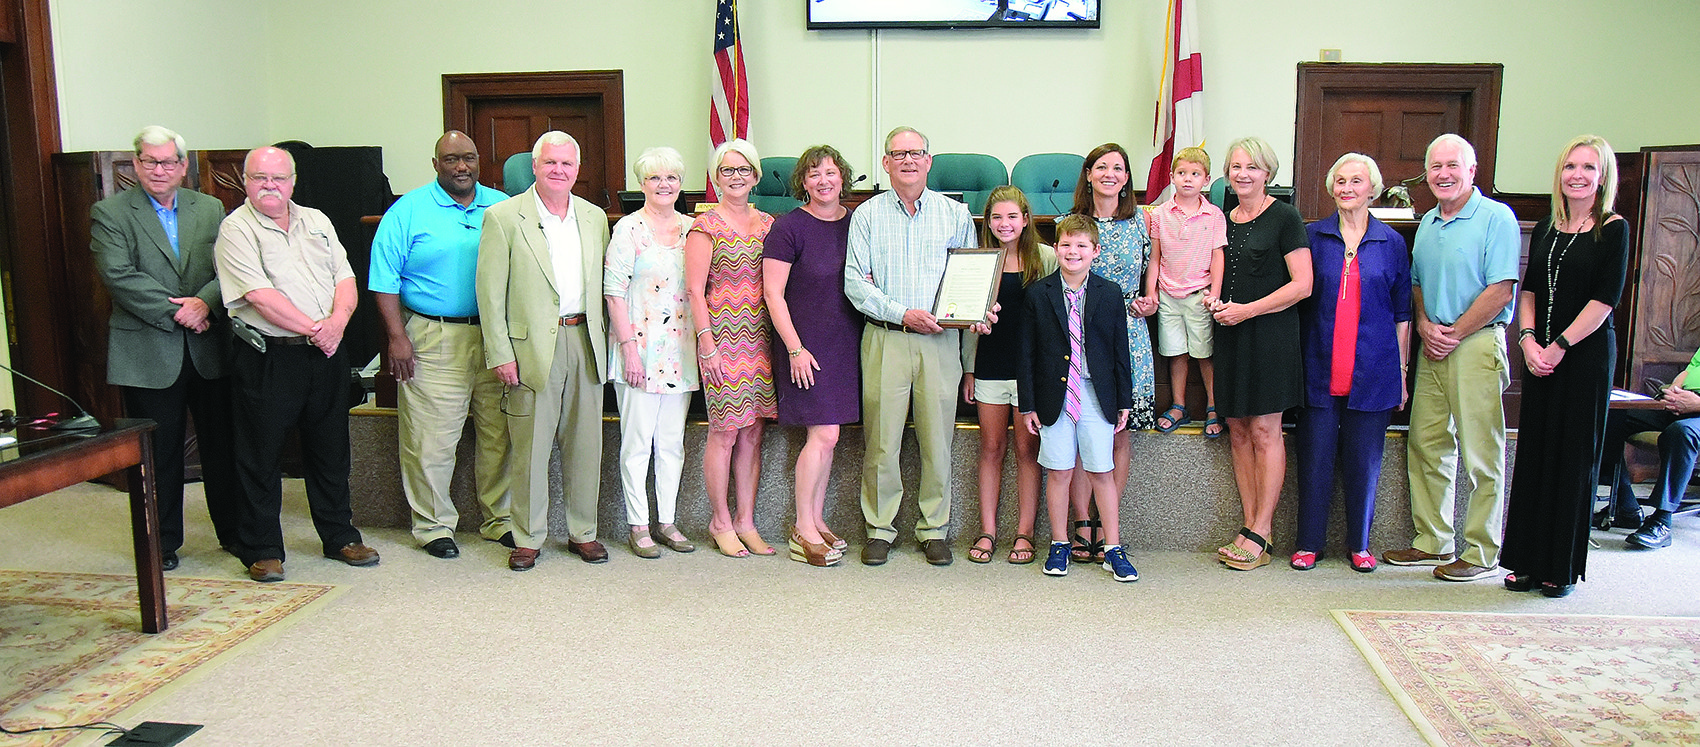 Jasper's Marlin Shubert, center, a member of the gospel group The Inspirations, was honored by Mayor David O'Mary and the Jasper City Council for his representation of the city across the nation when performing in concert. With Shubert are several family members on hand for Tuesday's presentation.